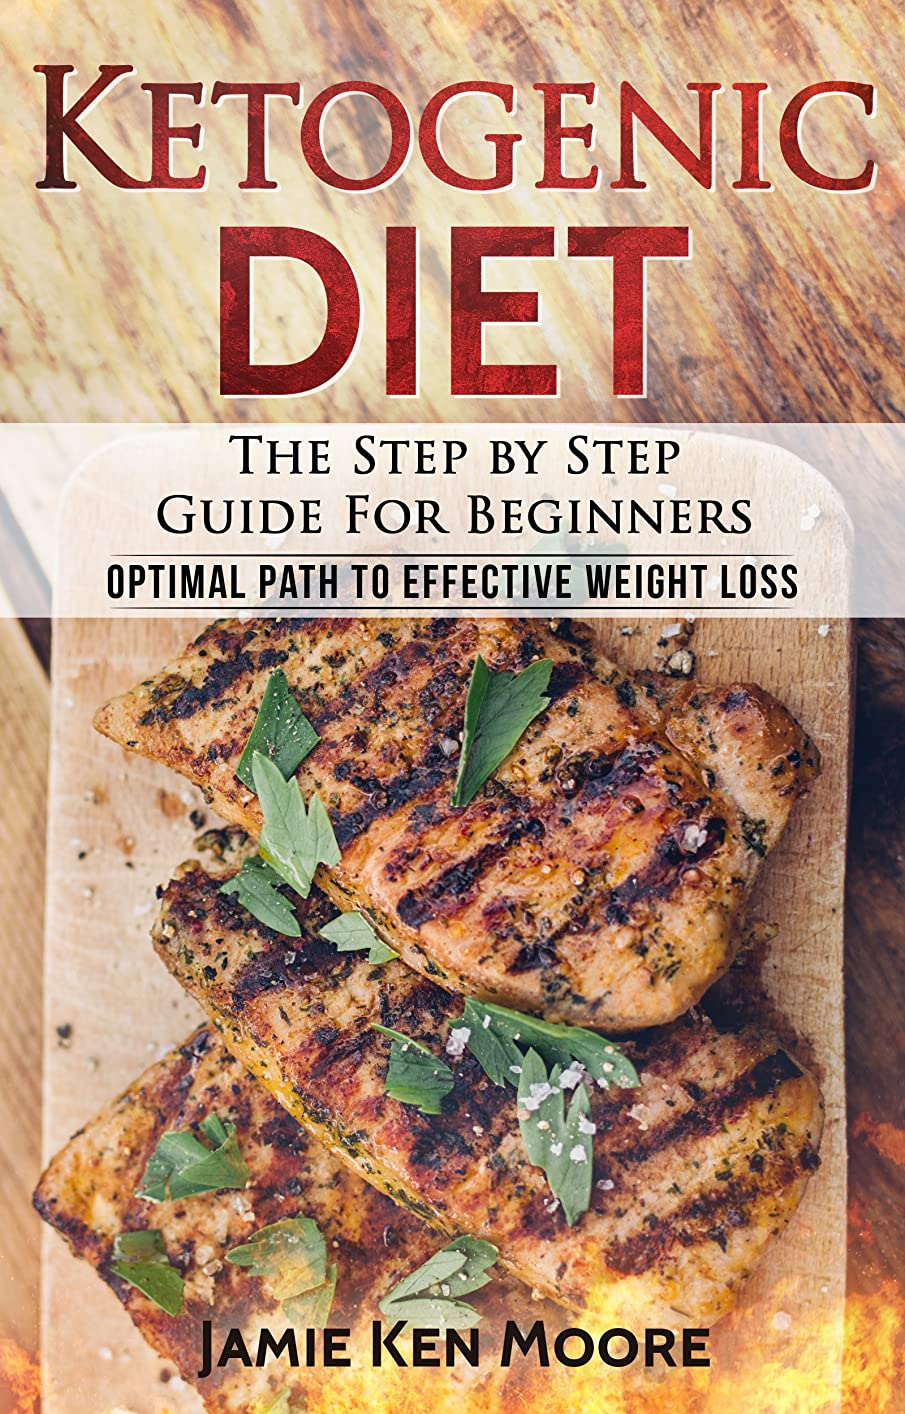 Ketogenic Diet :The Step by Step Guide For Beginners: Ketogenic Diet For Beginners : Ketogenic Diet For Weight Loss : Keto Diet : The Step by Step Guide For Beginners (English Edition)